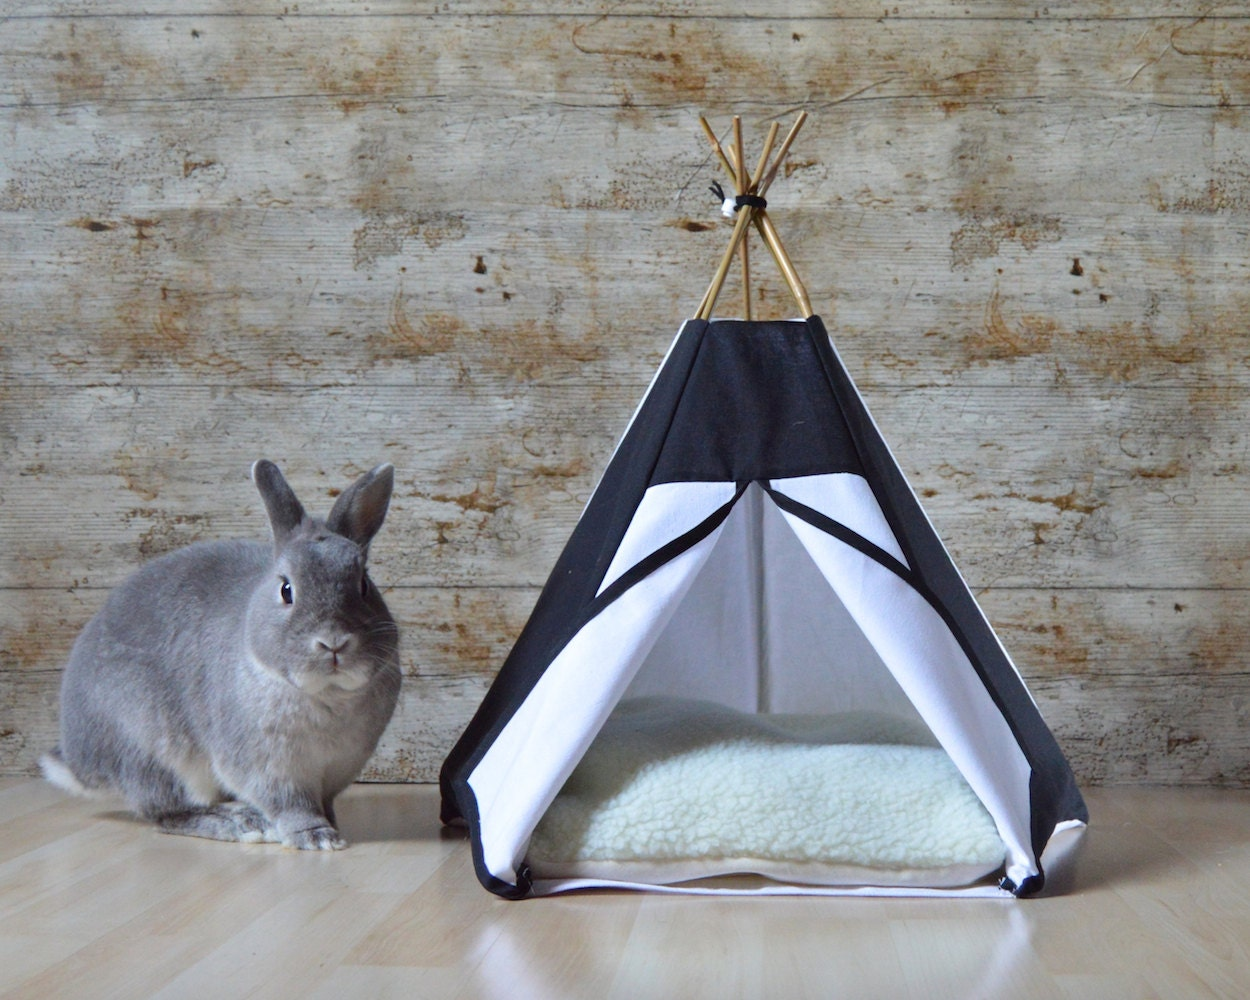 Rabbit Beds 28 Images Rabbit Bed Kitten Teepee With